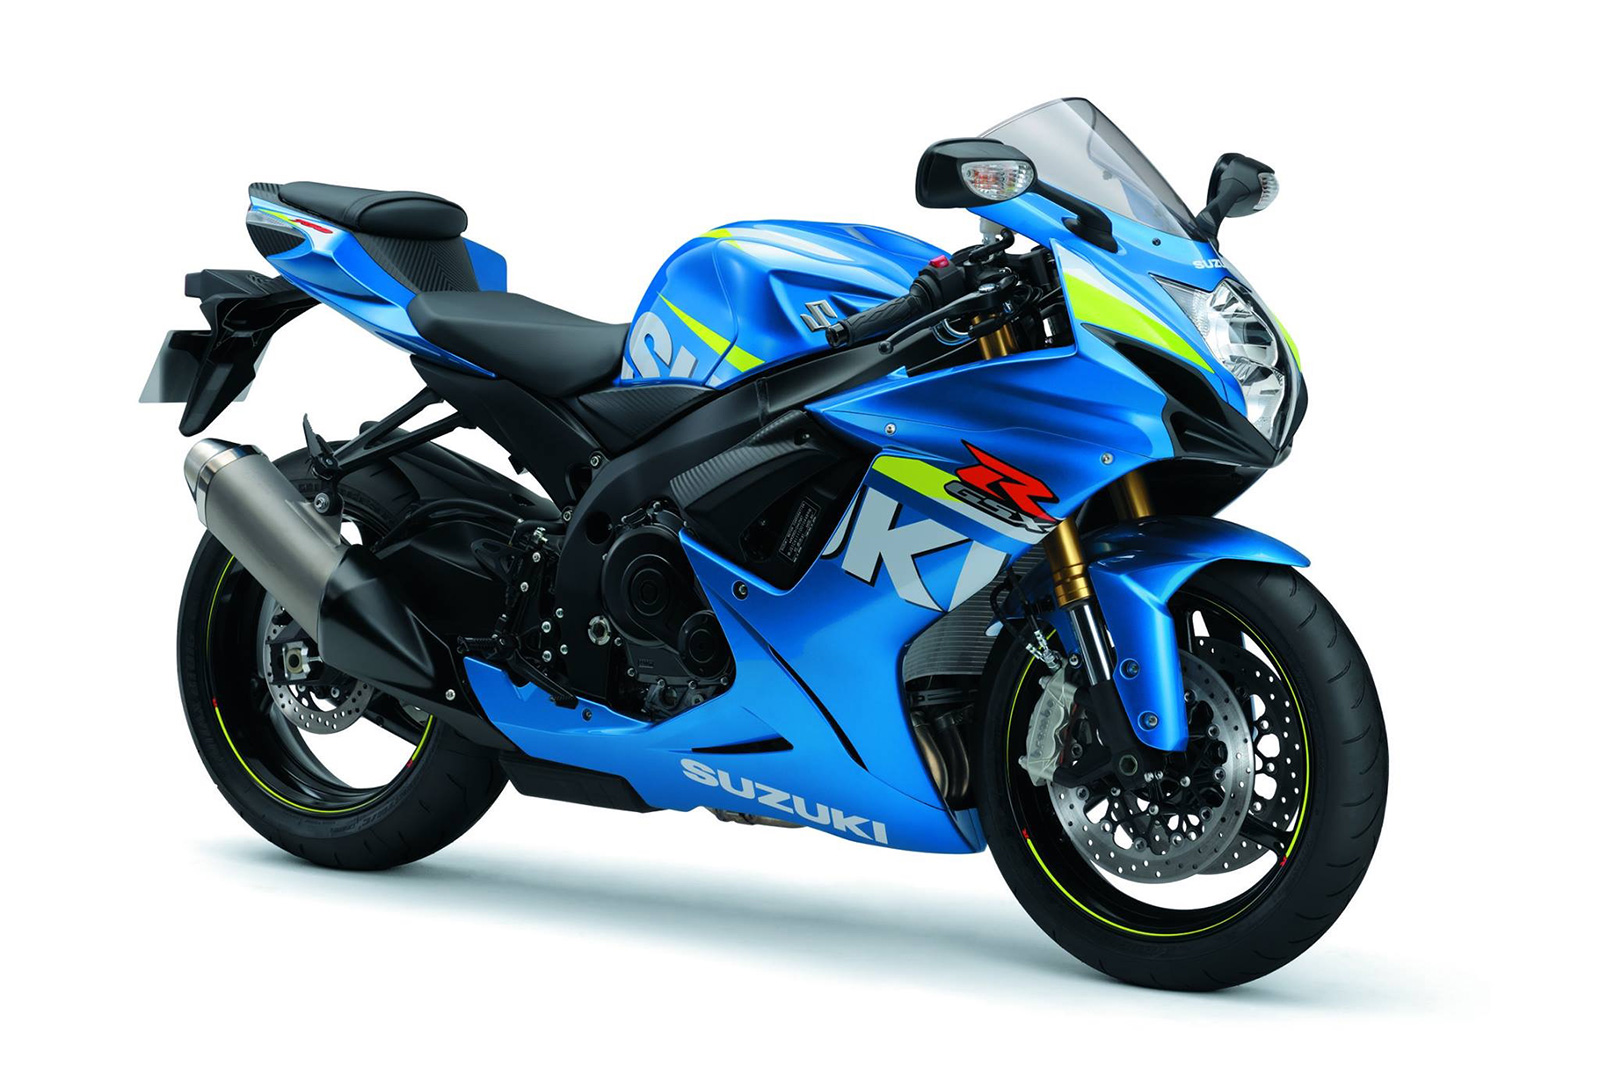 2015 gsxr 750 specifications autos post. Black Bedroom Furniture Sets. Home Design Ideas